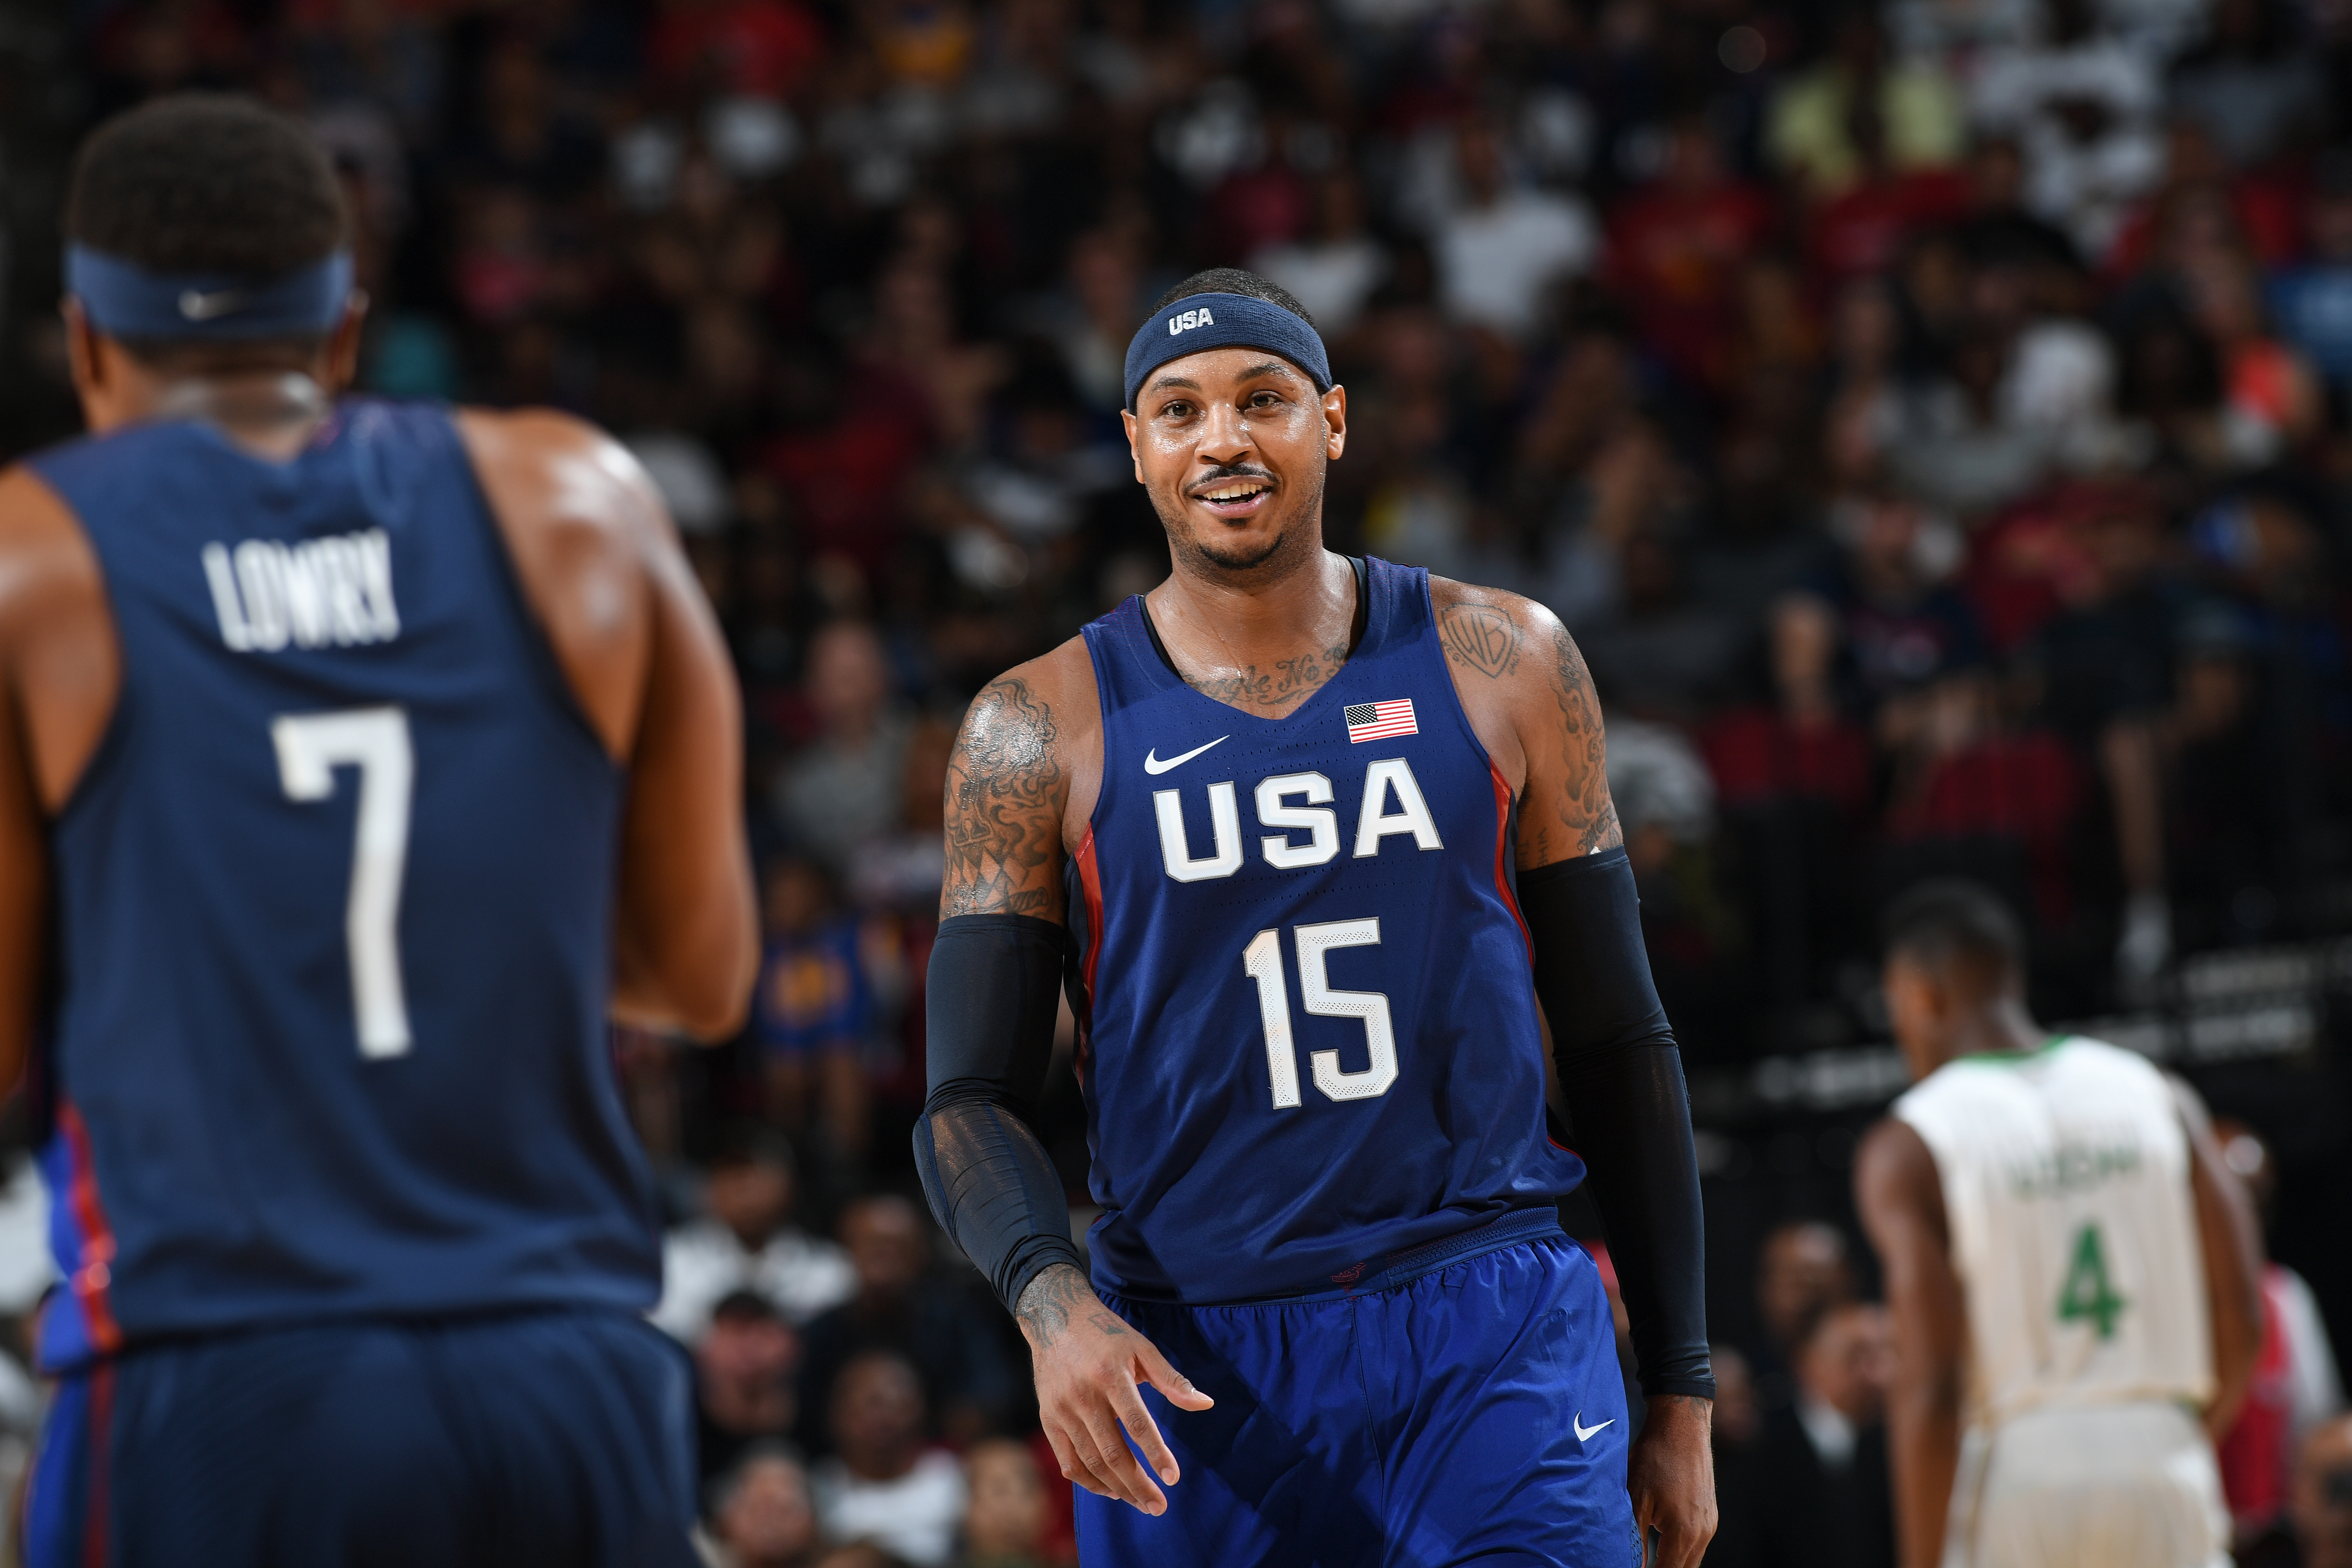 HOUSTON, TX - AUGUST 1:  Carmelo Anthony #15 of the USA Basketball Men's National Team looks on during the game against Nigeria on August 1, 2016 at the Toyota Center in Houston, Texas. (Photo by Garrett Ellwood/NBAE via Getty Images)